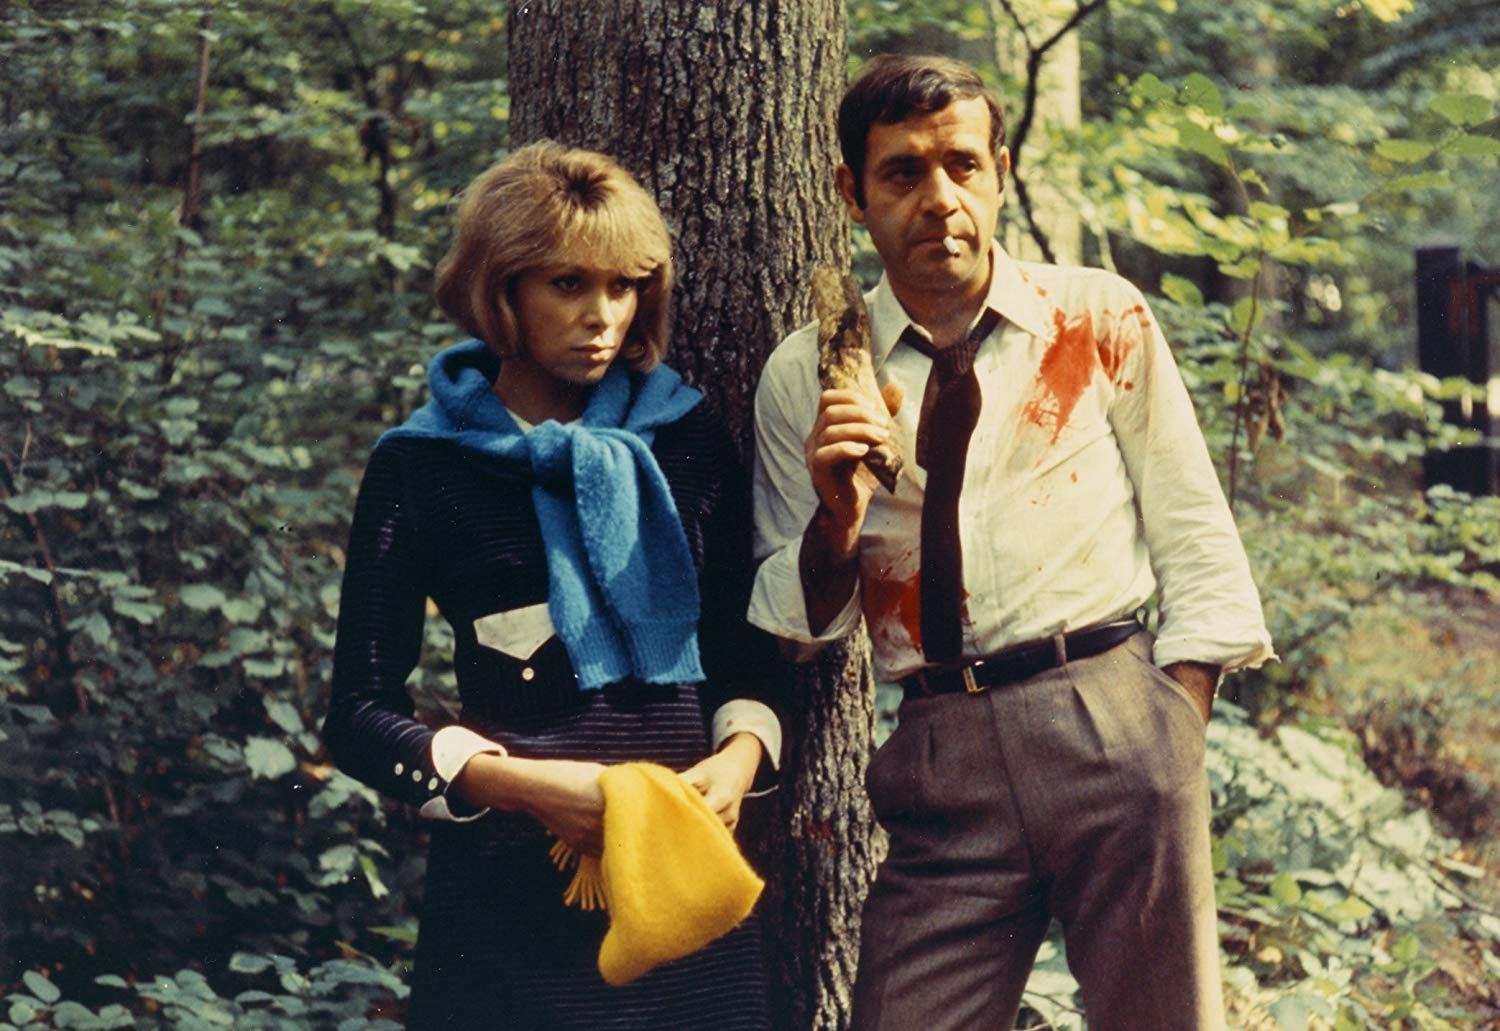 Husband and wife Jean Yanne and Mireille Darc on a weekend journey into the countryside in Weekend (1967)